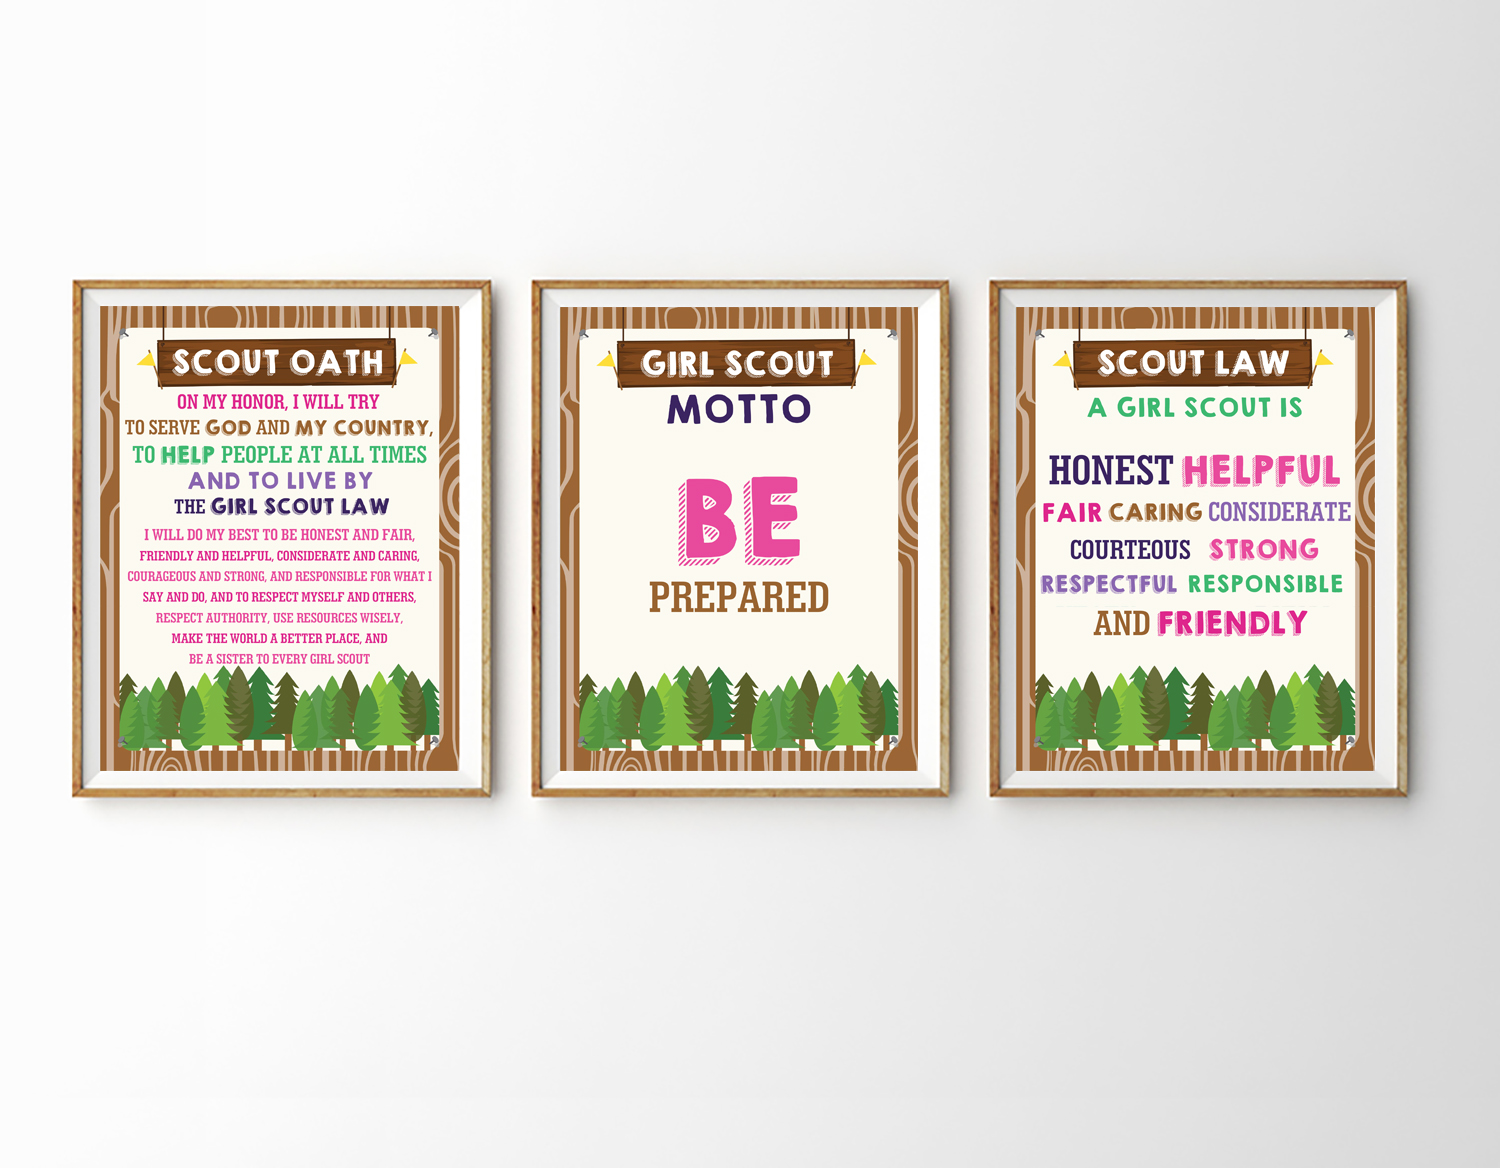 graphic regarding Boy Scout Oath and Law Printable named Boy Scout and Female Scout Motto Oath Regulation Posters Printables